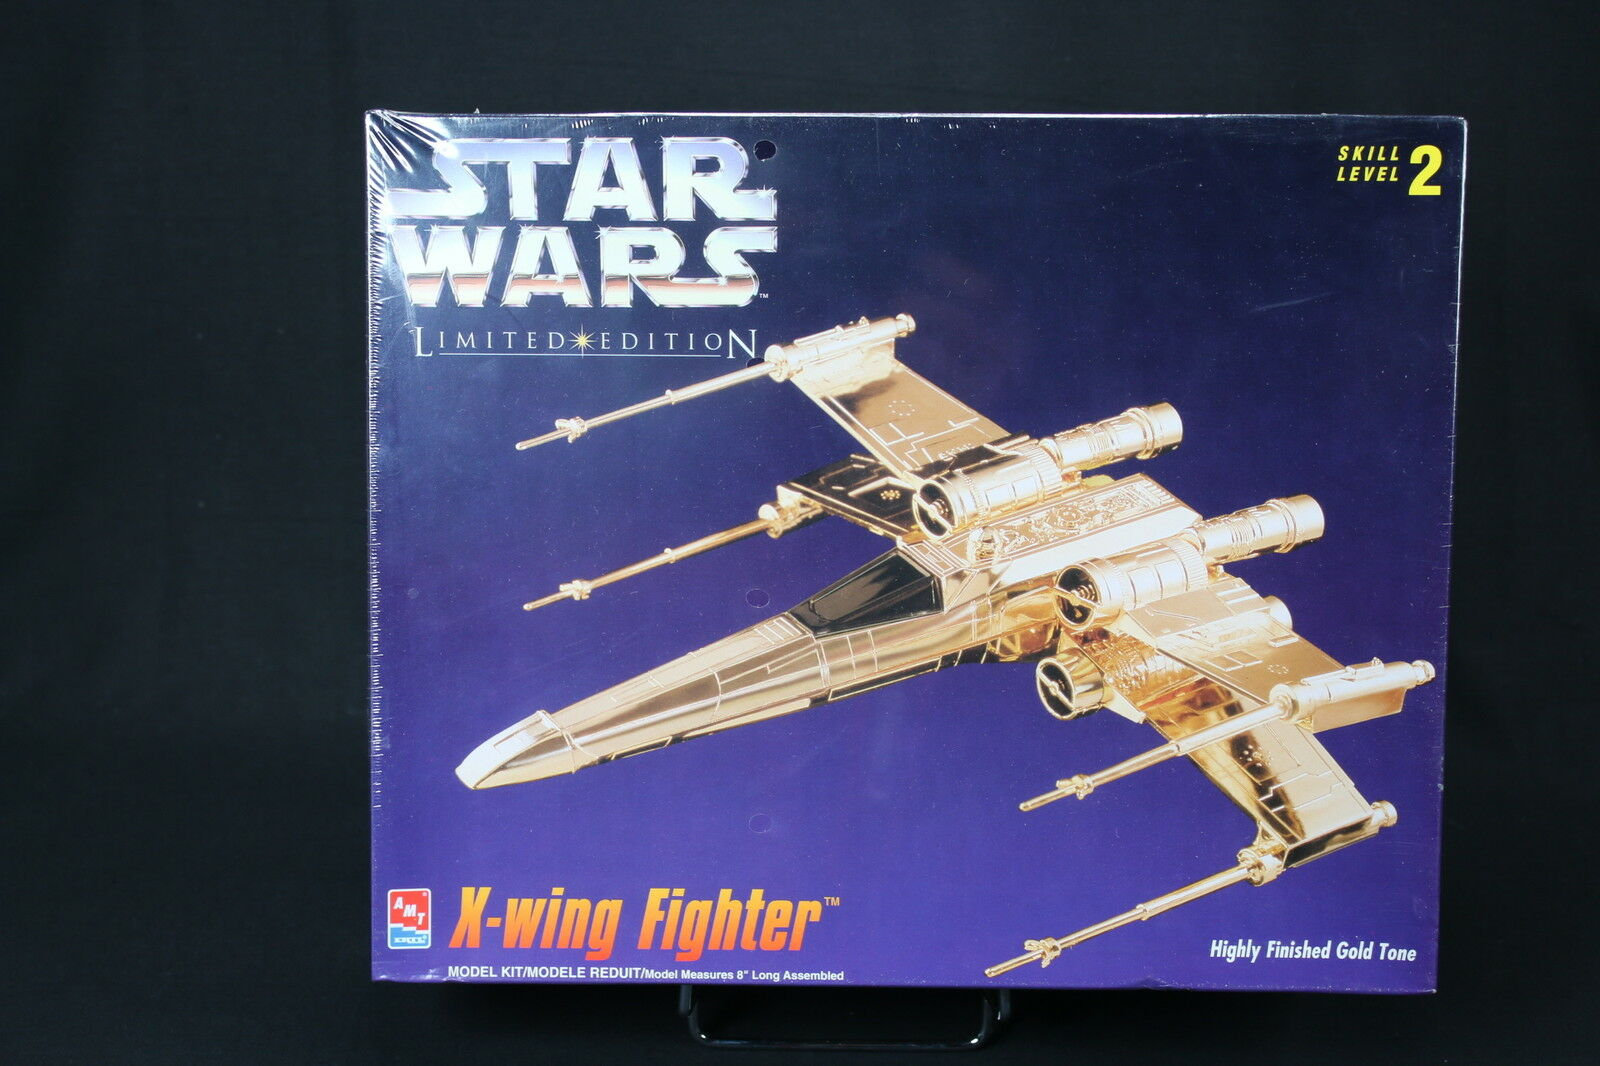 XI011 AMT long 8  maquette avion 8769 Star Wars X-wing fighter Edl